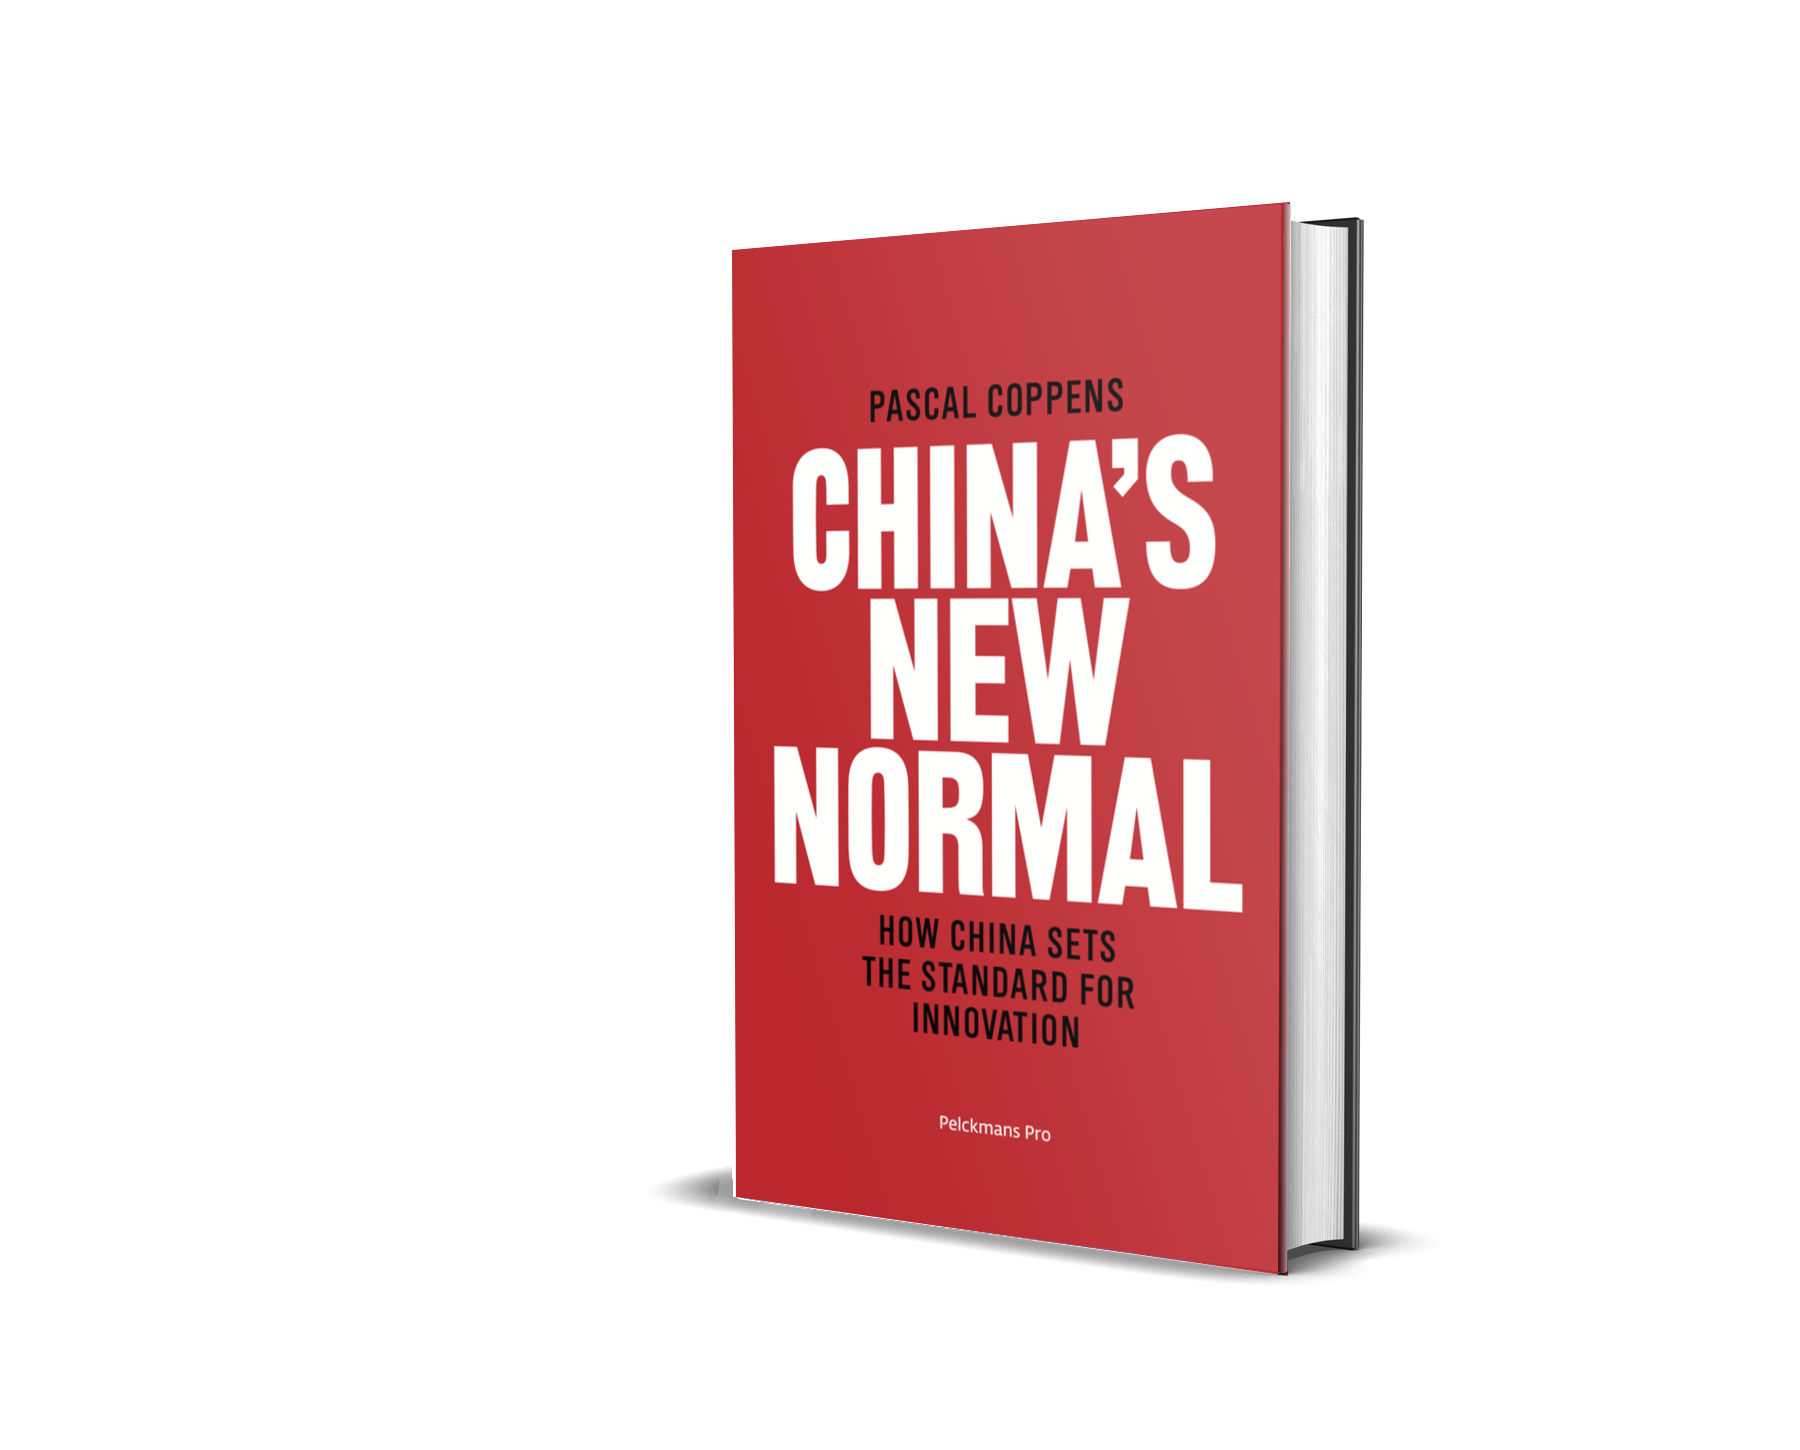 China's New Normal - How China sets the standard for innovationWhen we think of technology and innovation we almost naturally end up with American companies such as Google, Apple, Facebook, Tesla or Amazon. That association creates a huge blind spot. As the world is watching what is happening in Silicon Valley, an innovation train in China is racing past us. Baidu, Alibaba and Tencent are now well-known names of fast and furious innovative China, but they are only the tip of the iceberg.Learn More or Buy the Book